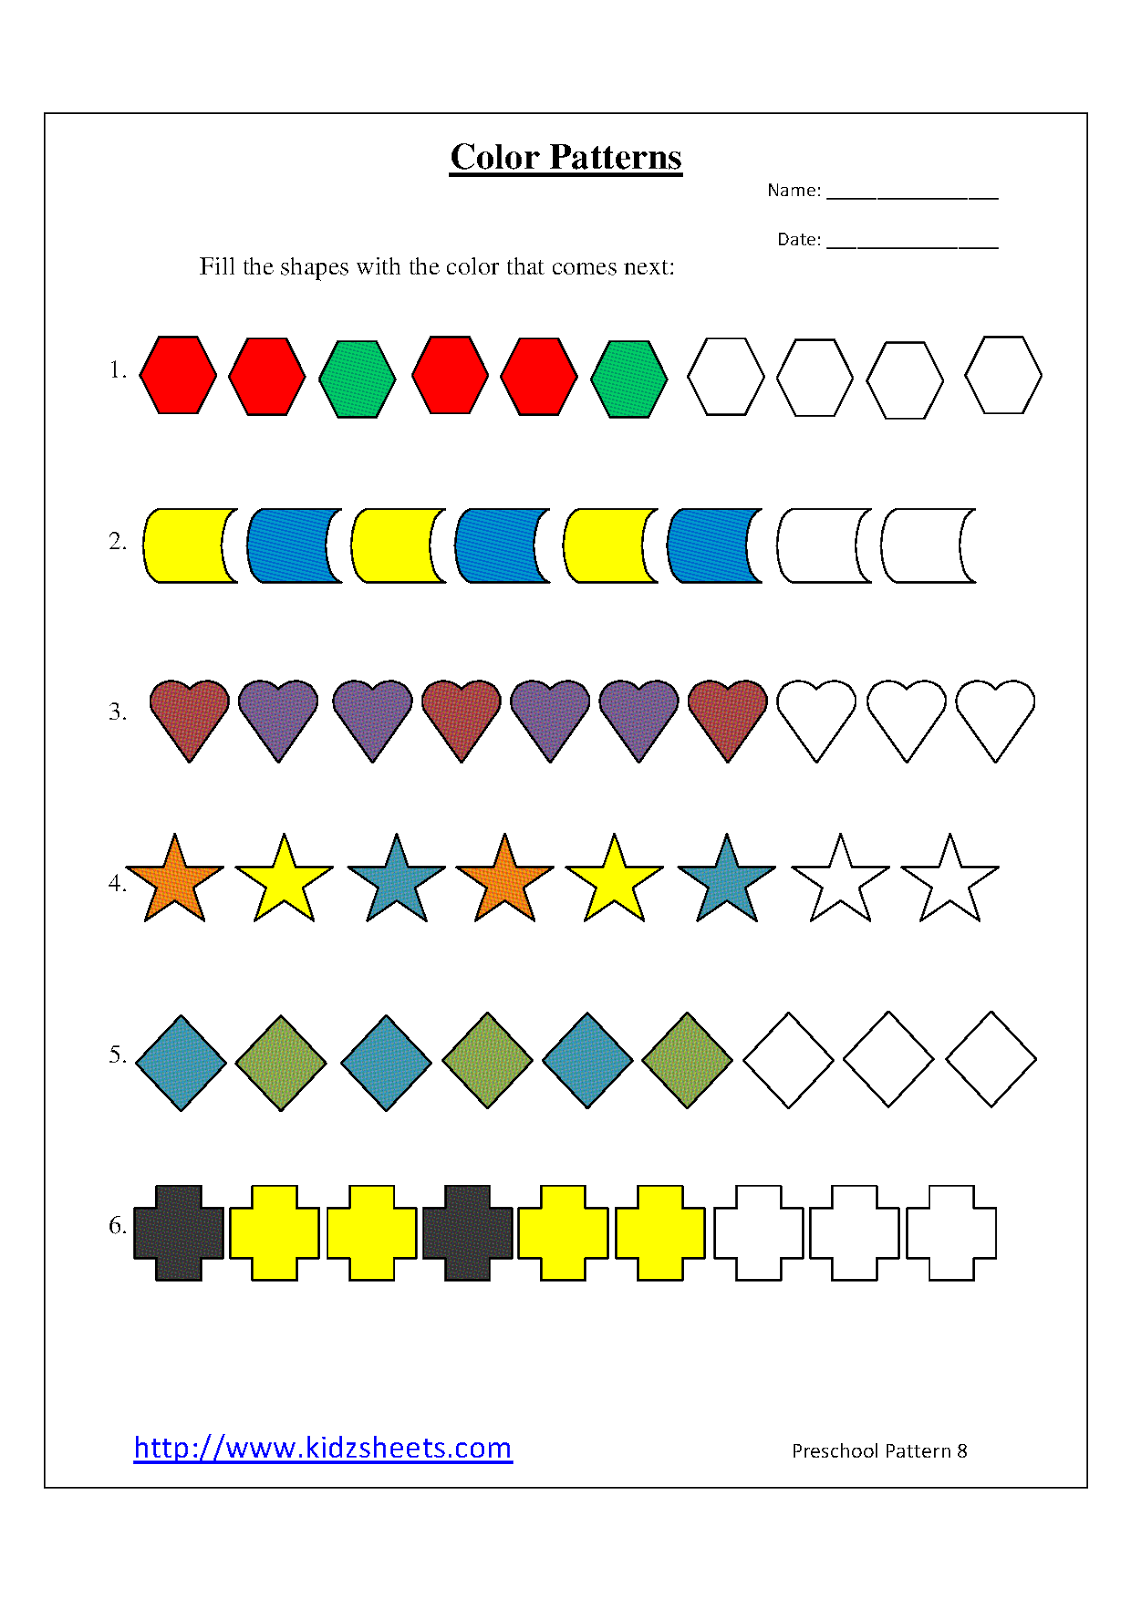 Free Printable Preschool Worksheets, Free Worksheets, Kids Maths Worksheets, Maths Worksheets, Preschool Color Patterns,Color Patterns, Preschool, Kids Color Patterns.